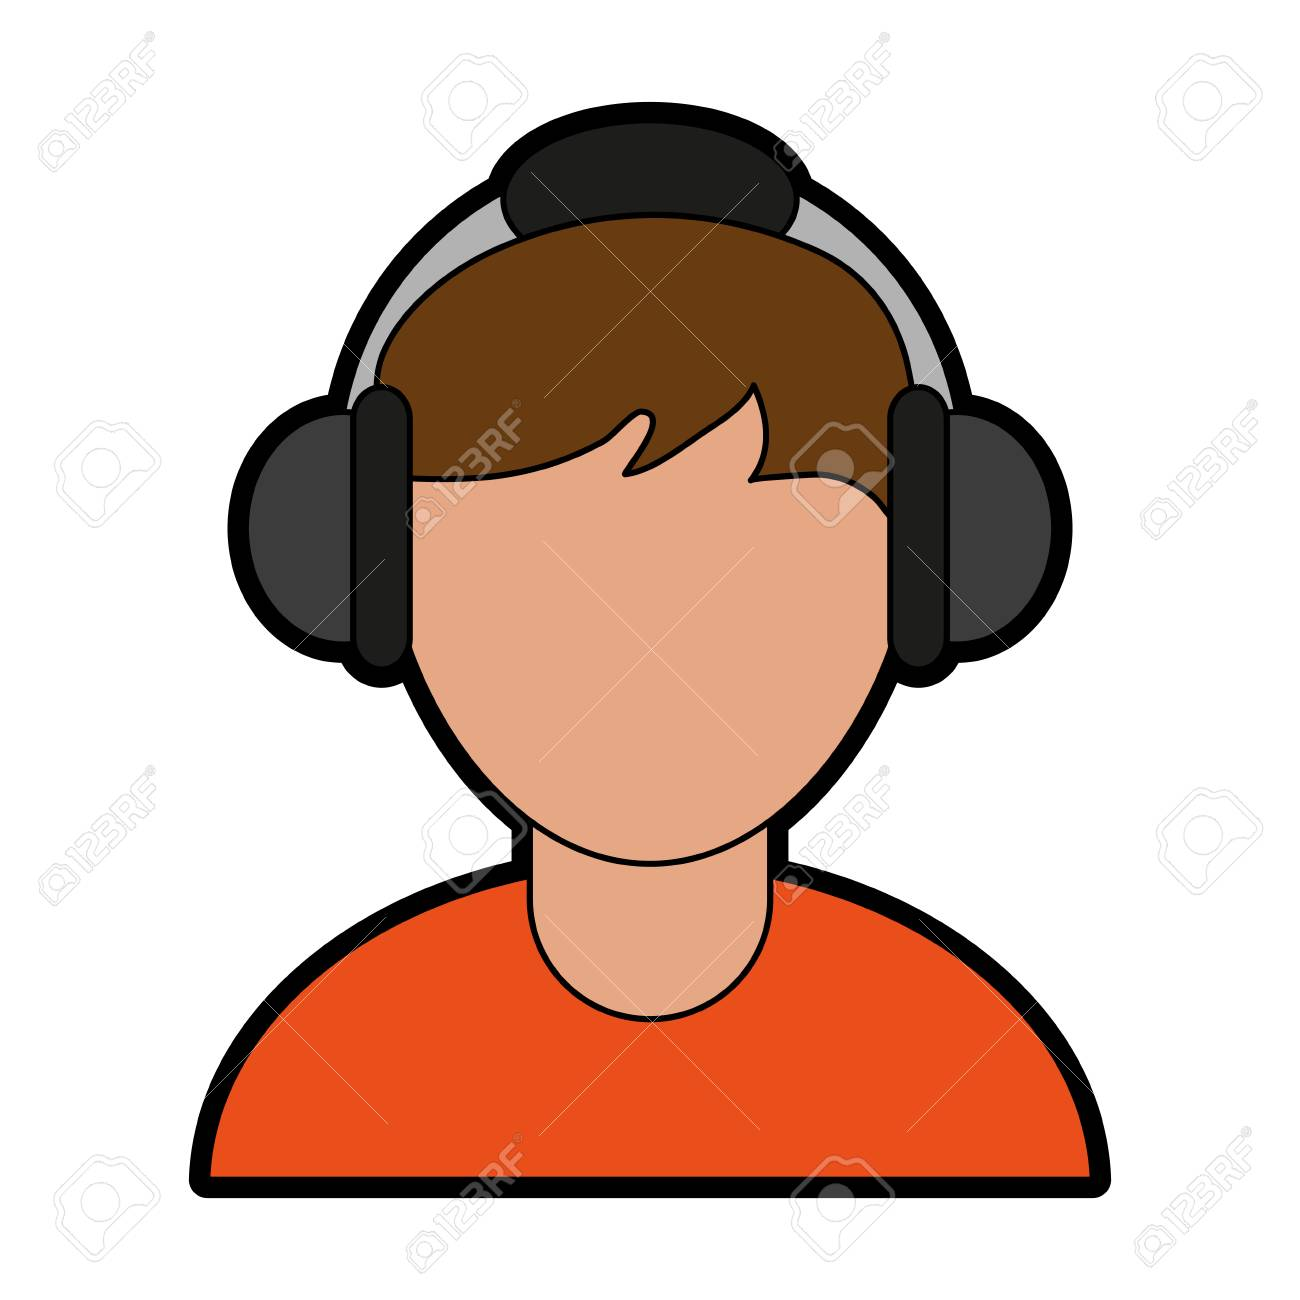 Person Wearing Headphones Icon Image Vector Illustration Design Royalty Free Cliparts Vectors And Stock Illustration Image 78179615